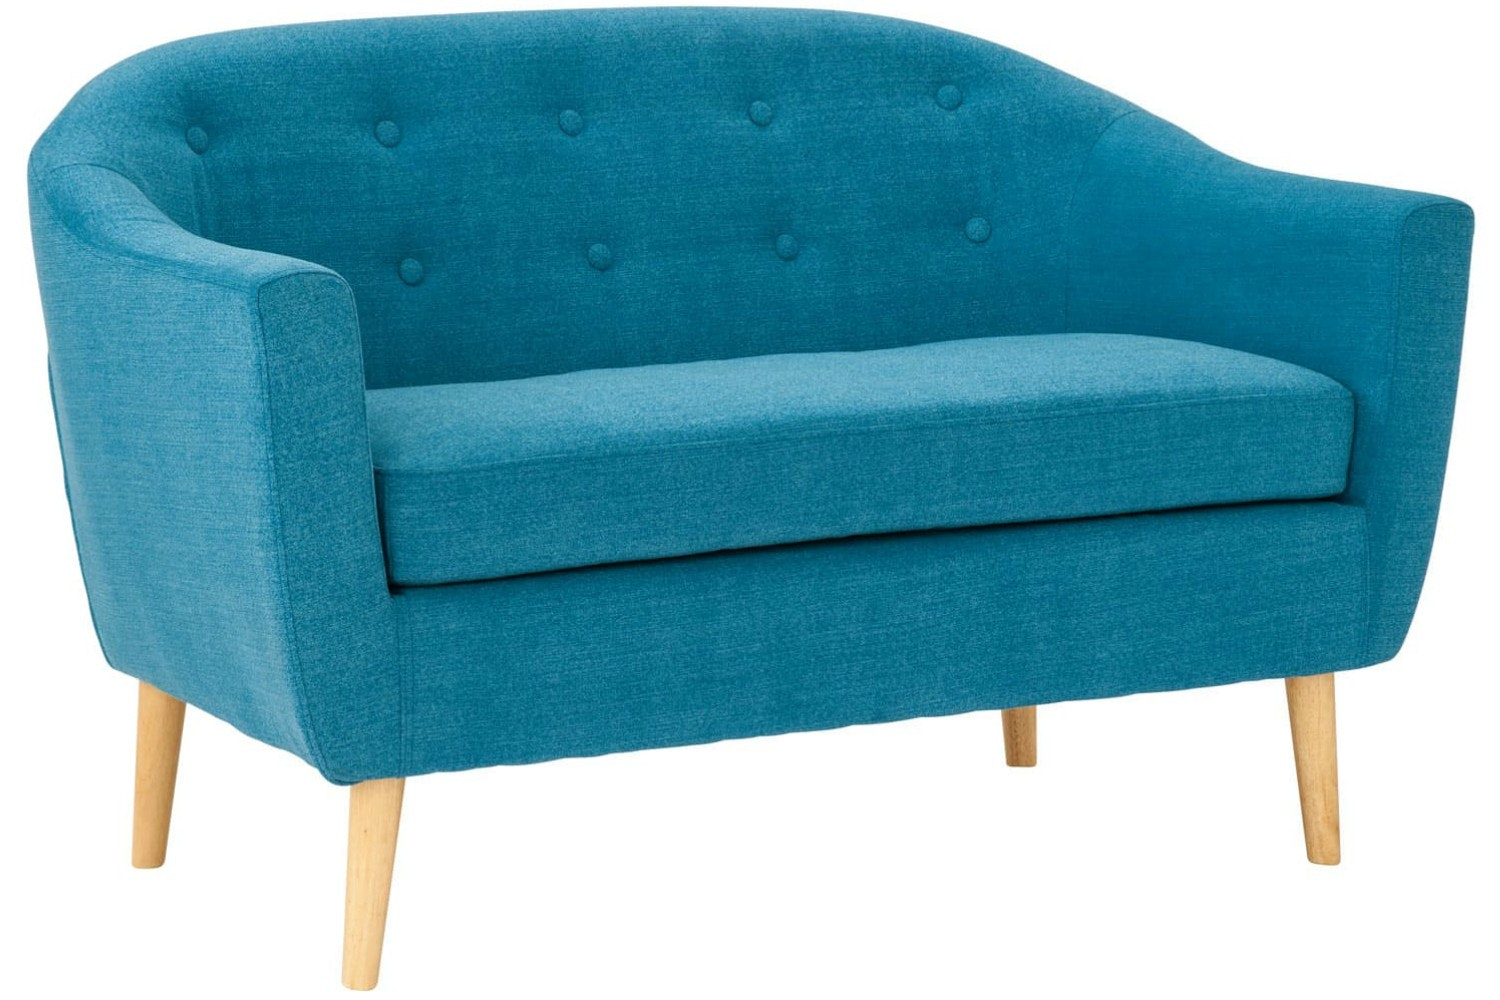 Harrison 2 Seater Sofa | Teal